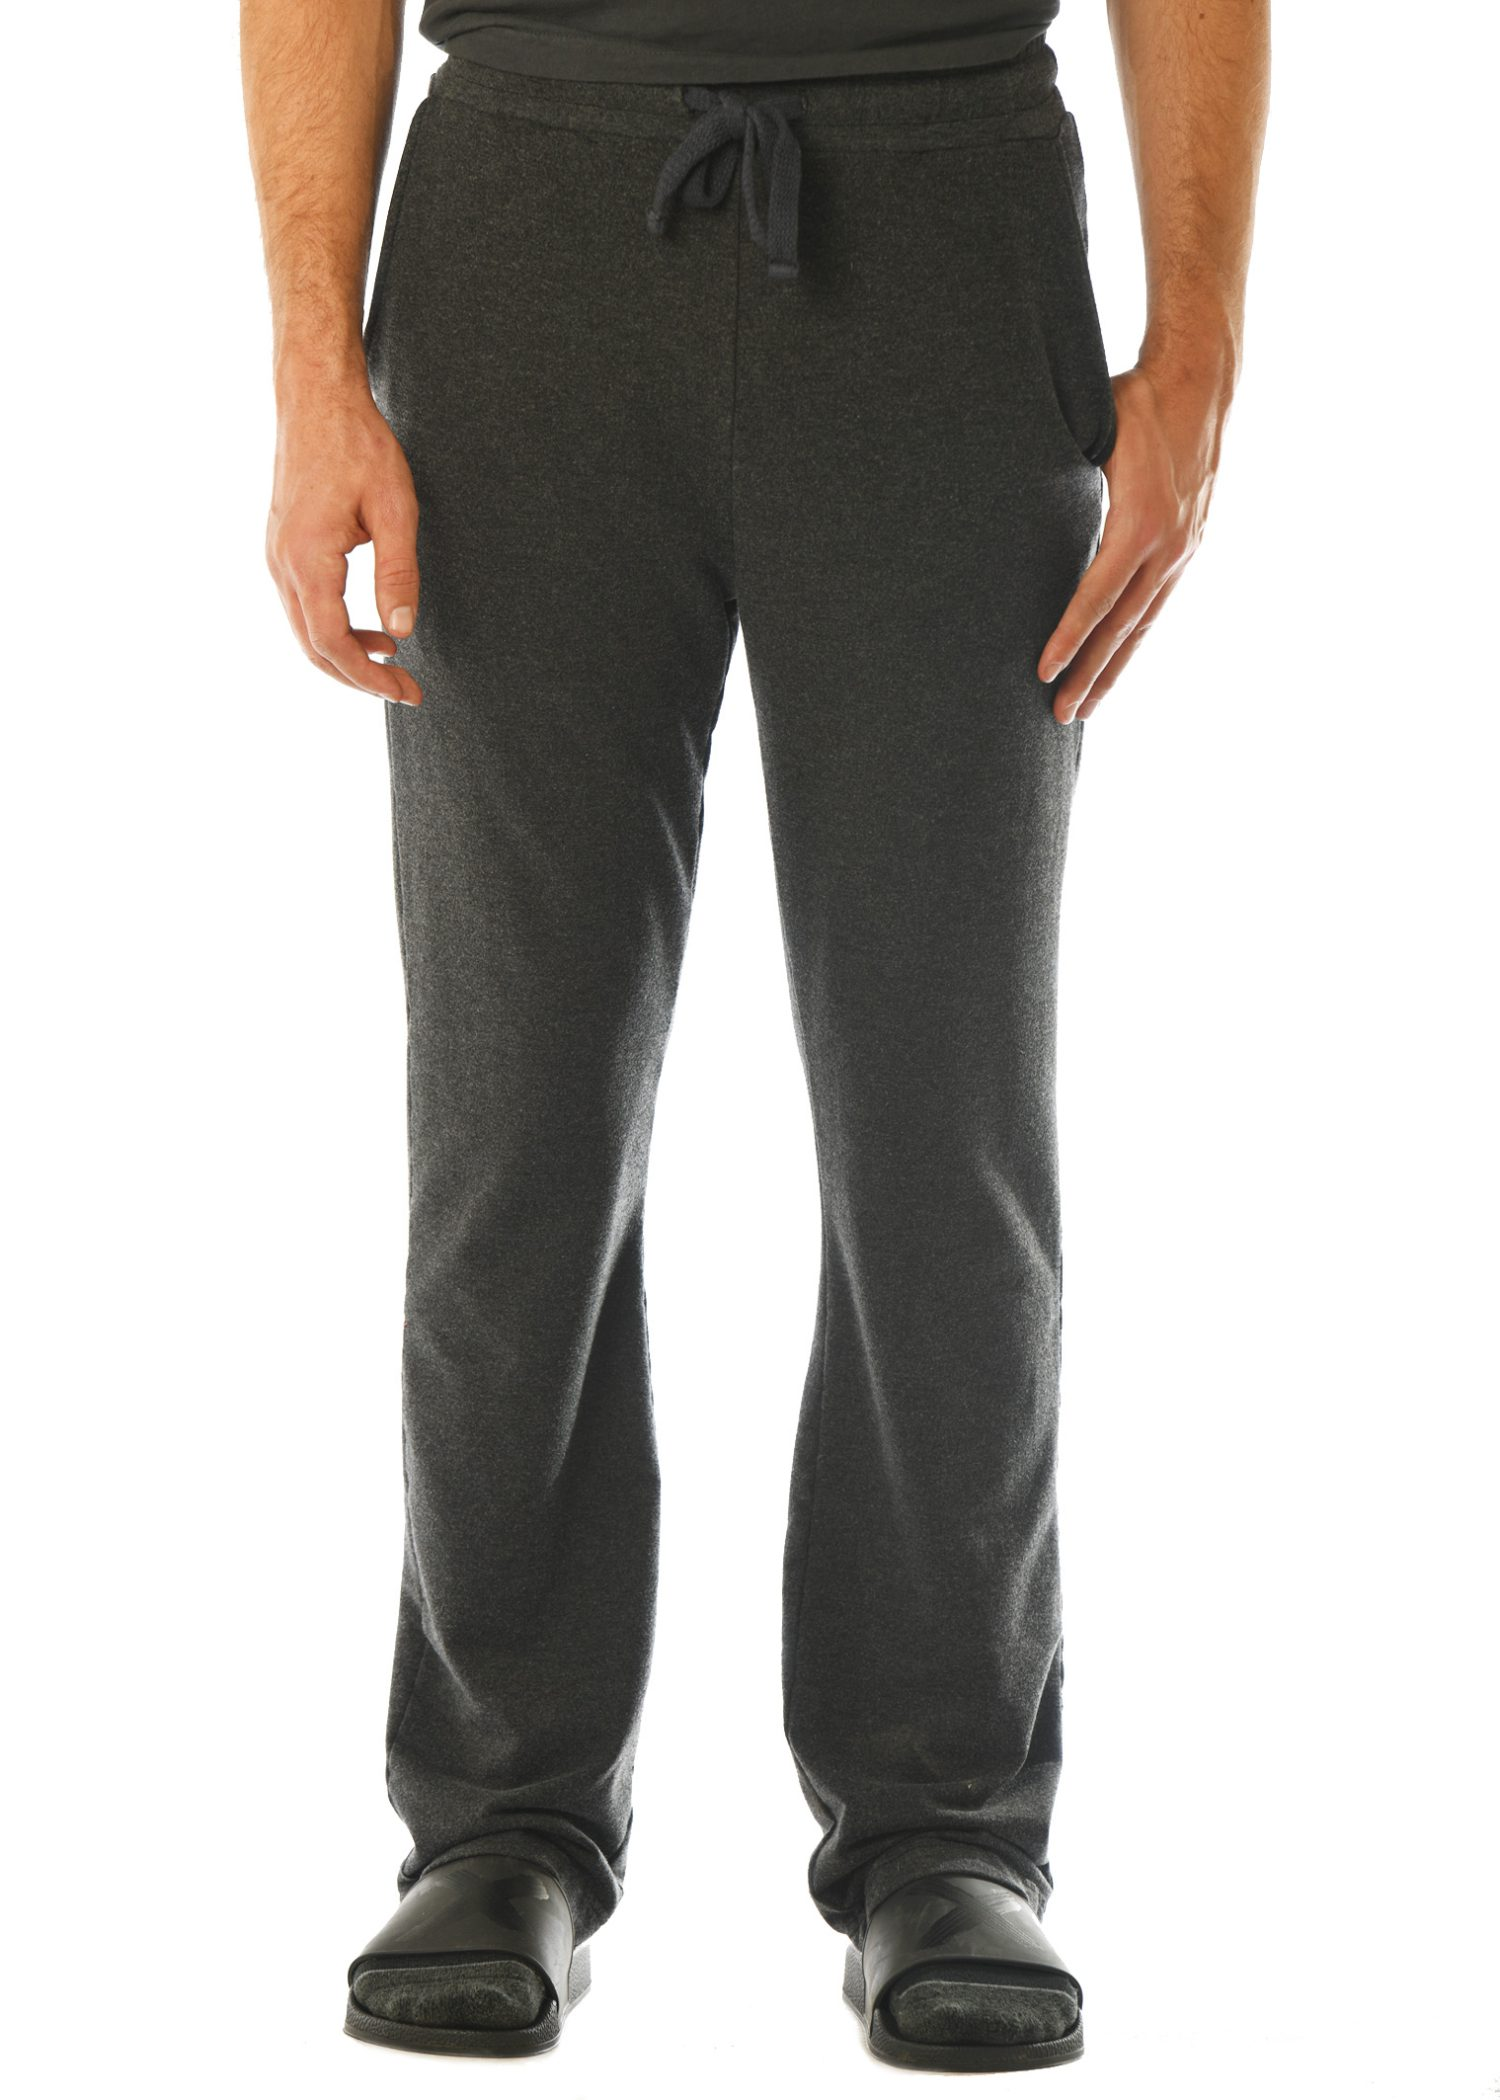 GG 310 Men's Chill Pants Front